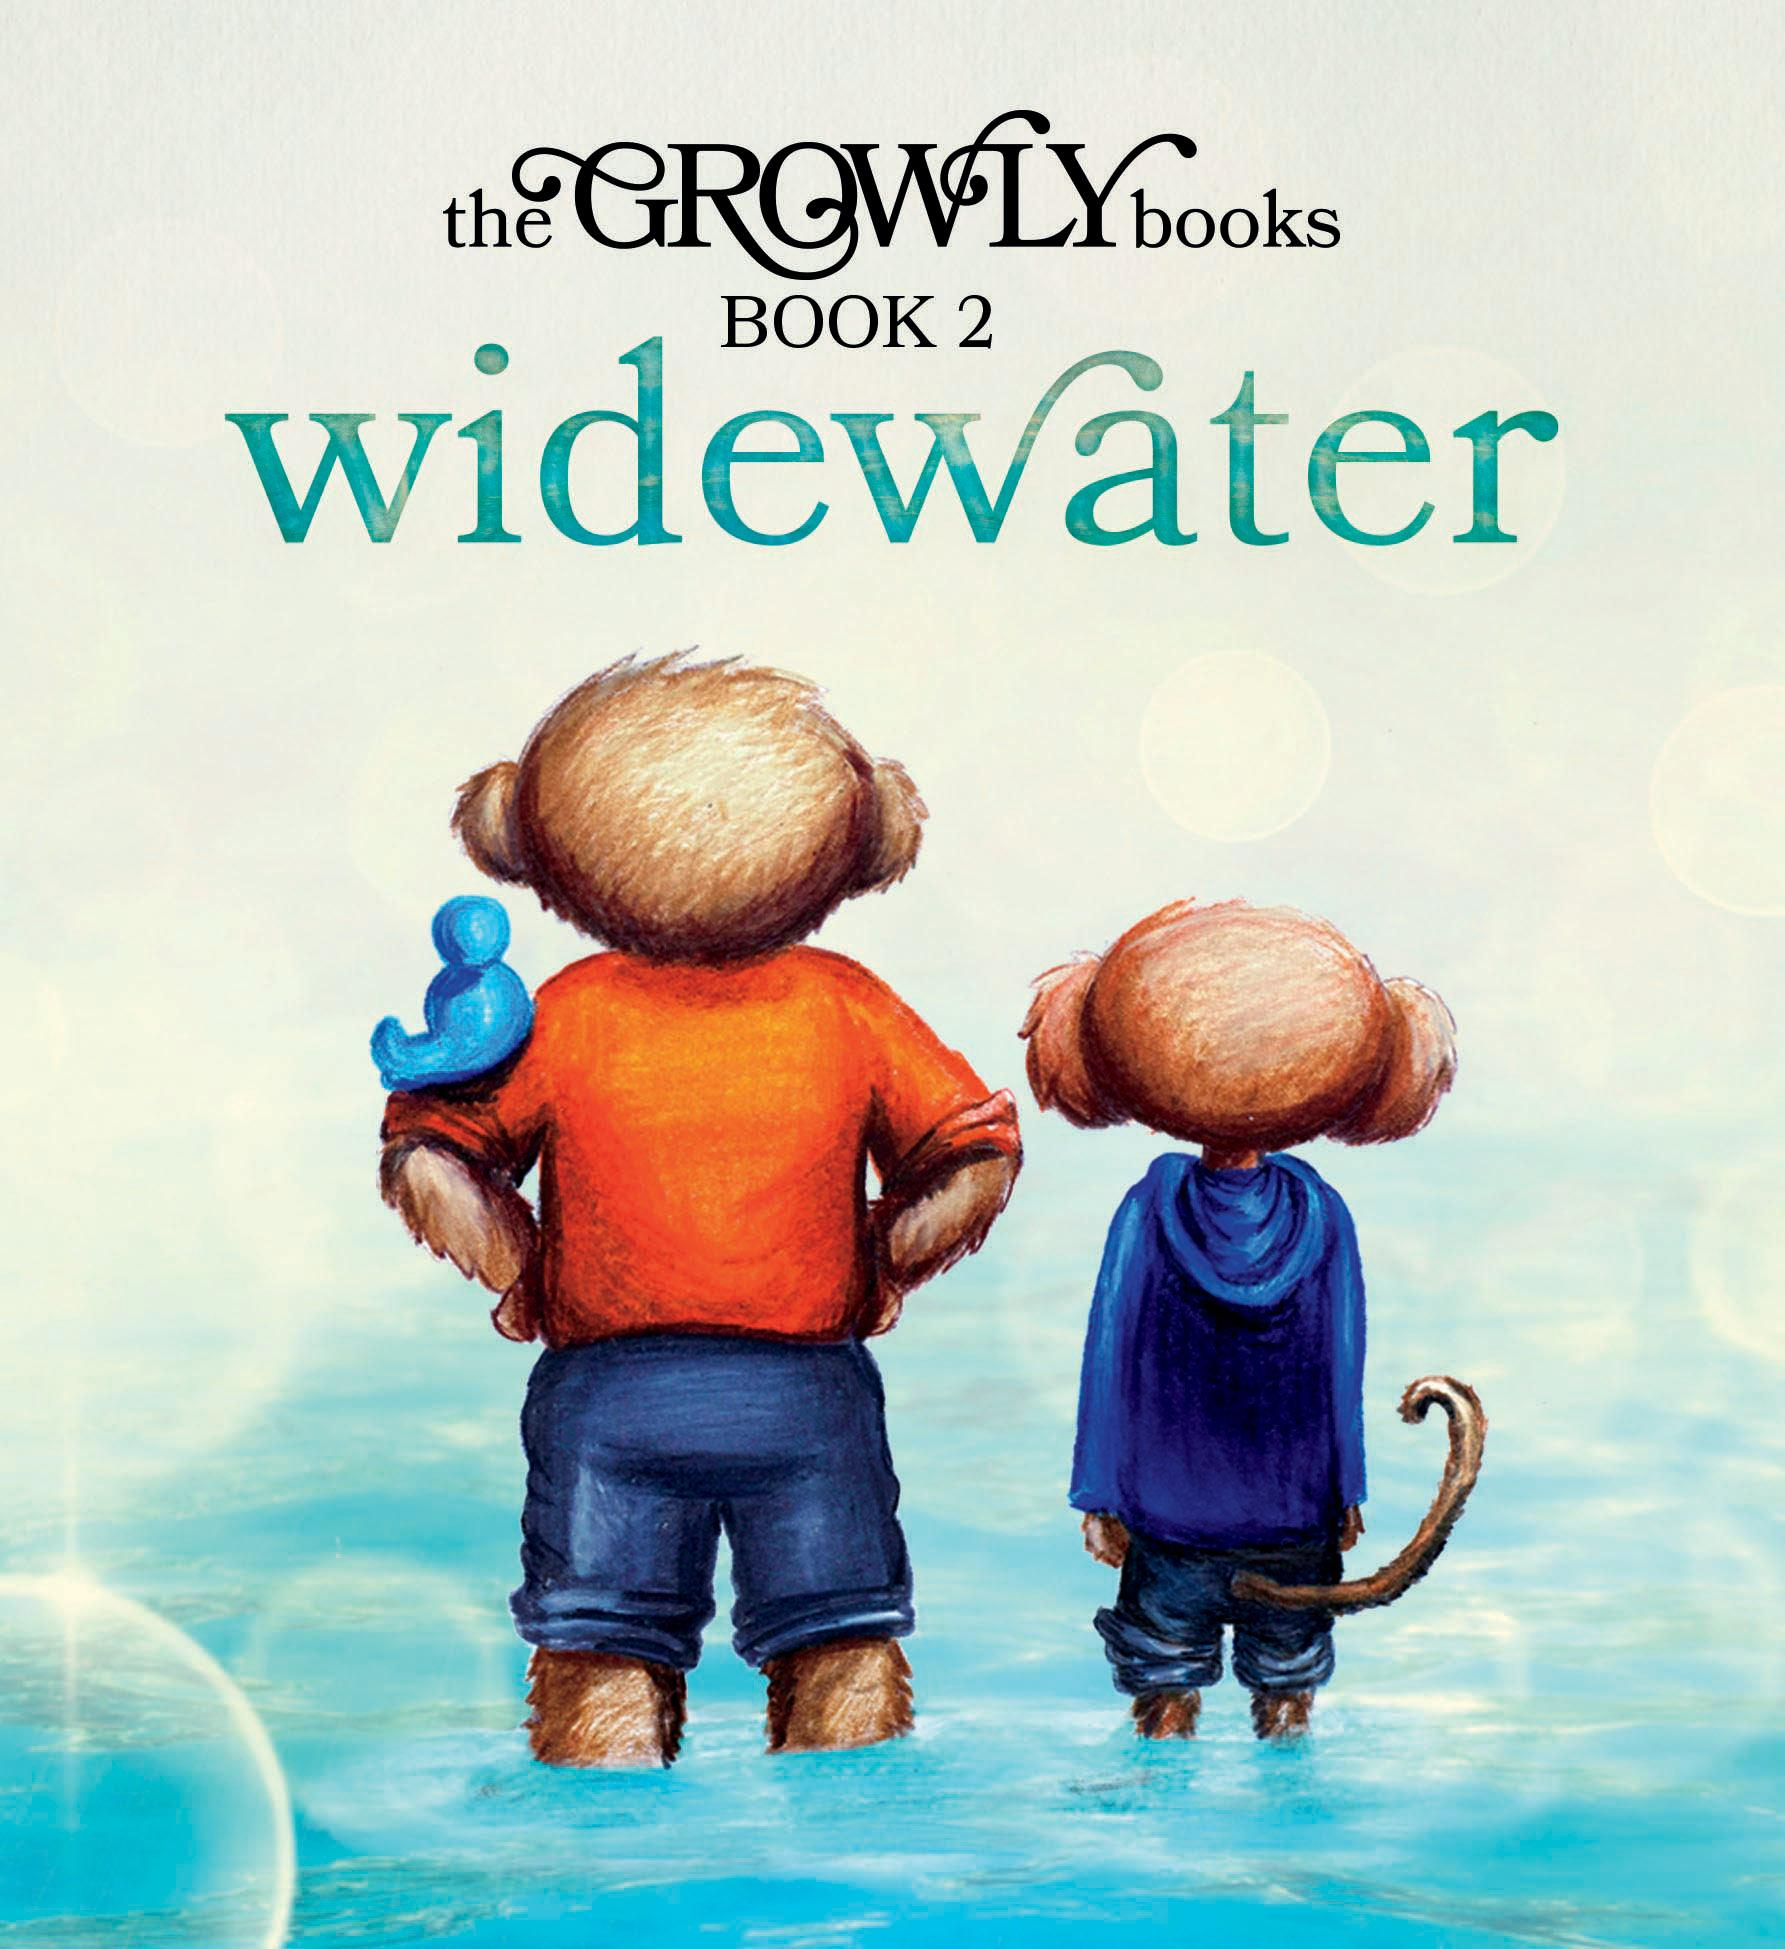 the growly books: widewater release date announced